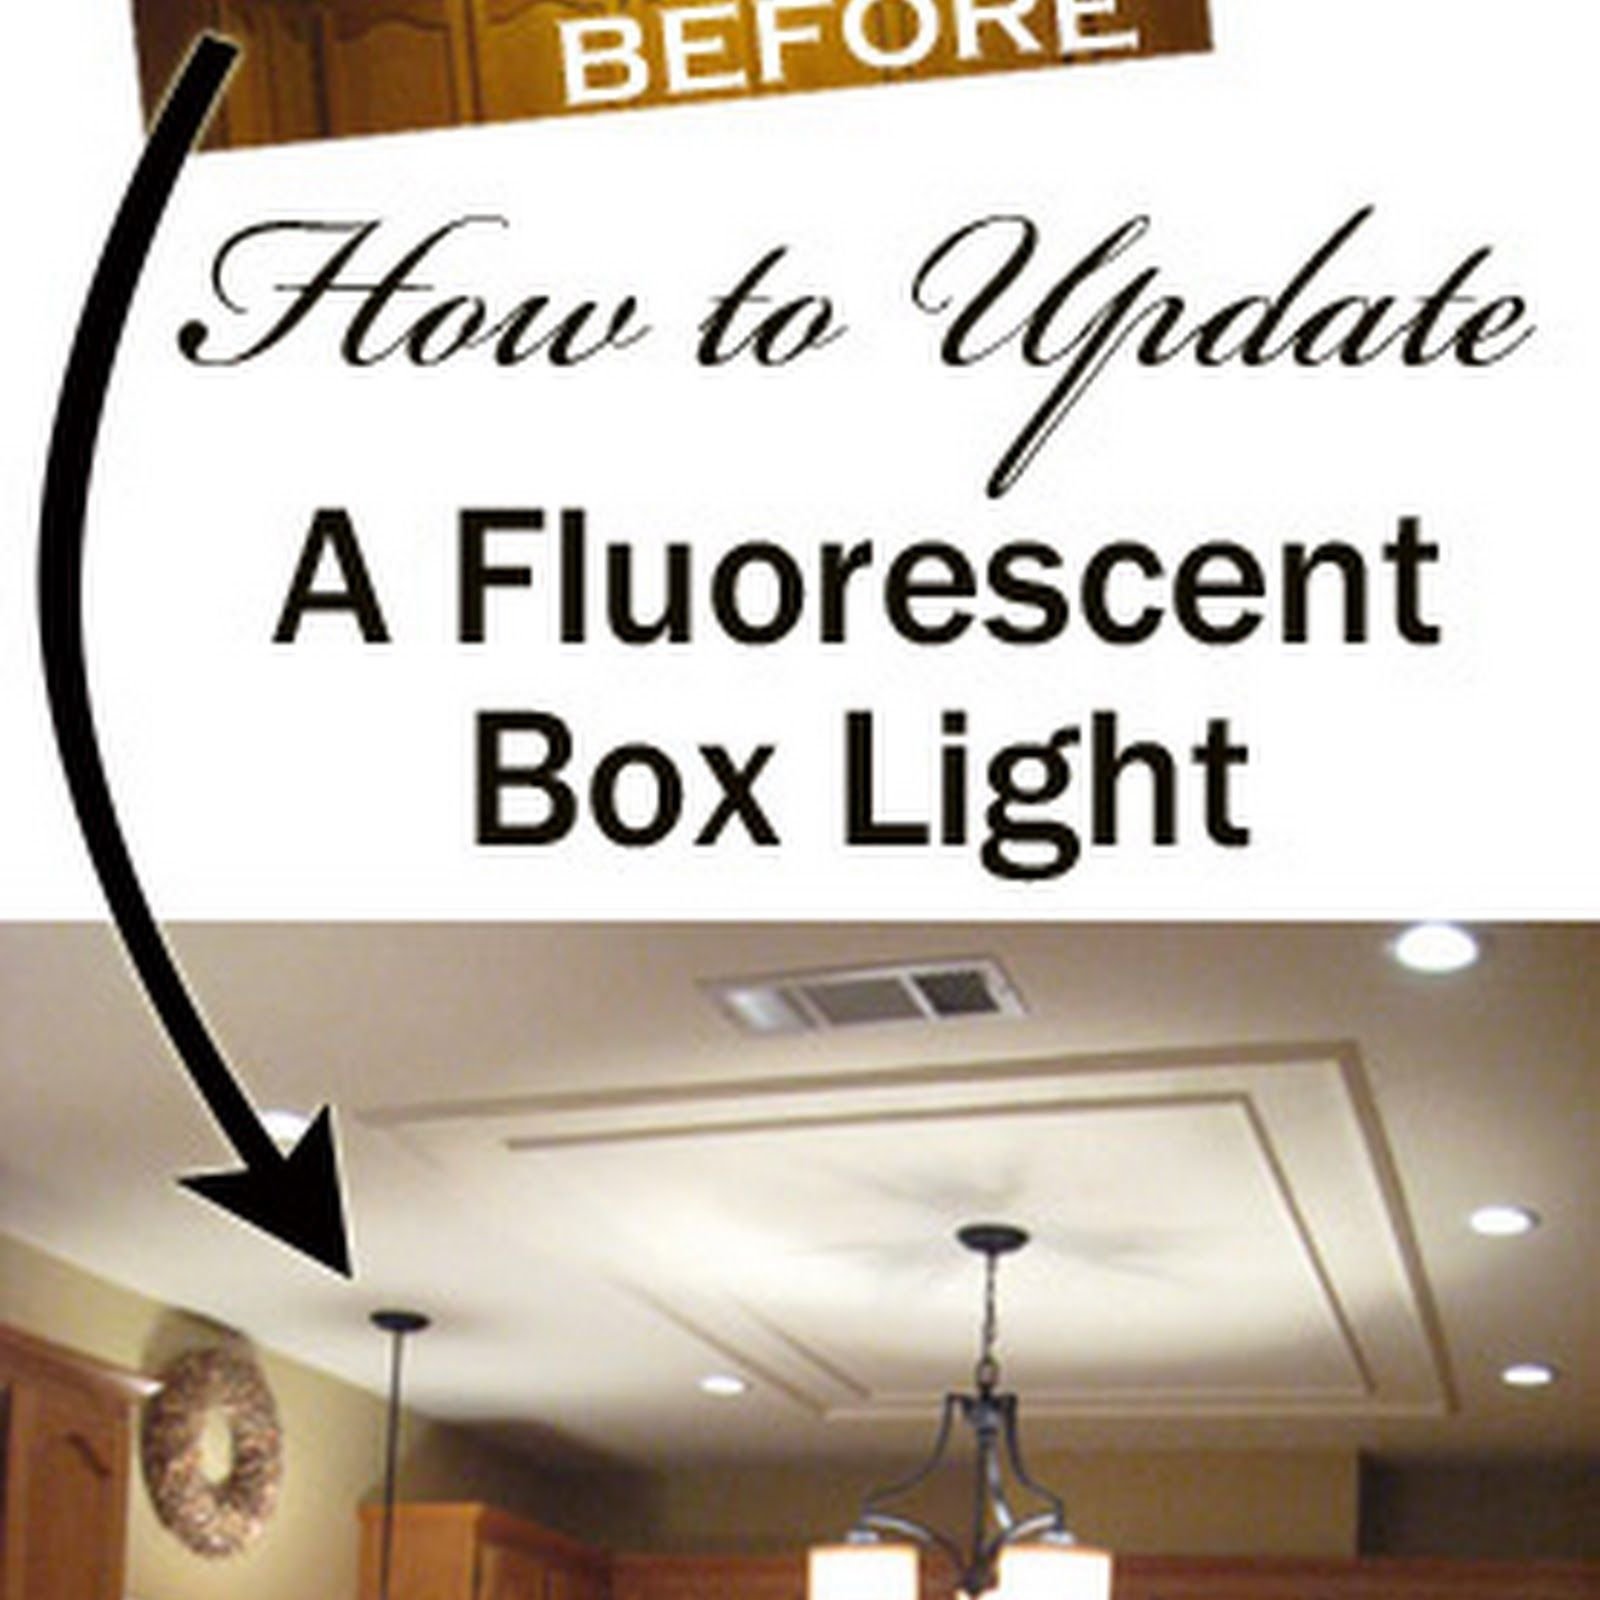 How To Remove And Replace A Large Fluorescent Light Box From Your Kitchen And Updat Diy Kitchen Lighting Installing Recessed Lighting Fluorescent Light Fixture